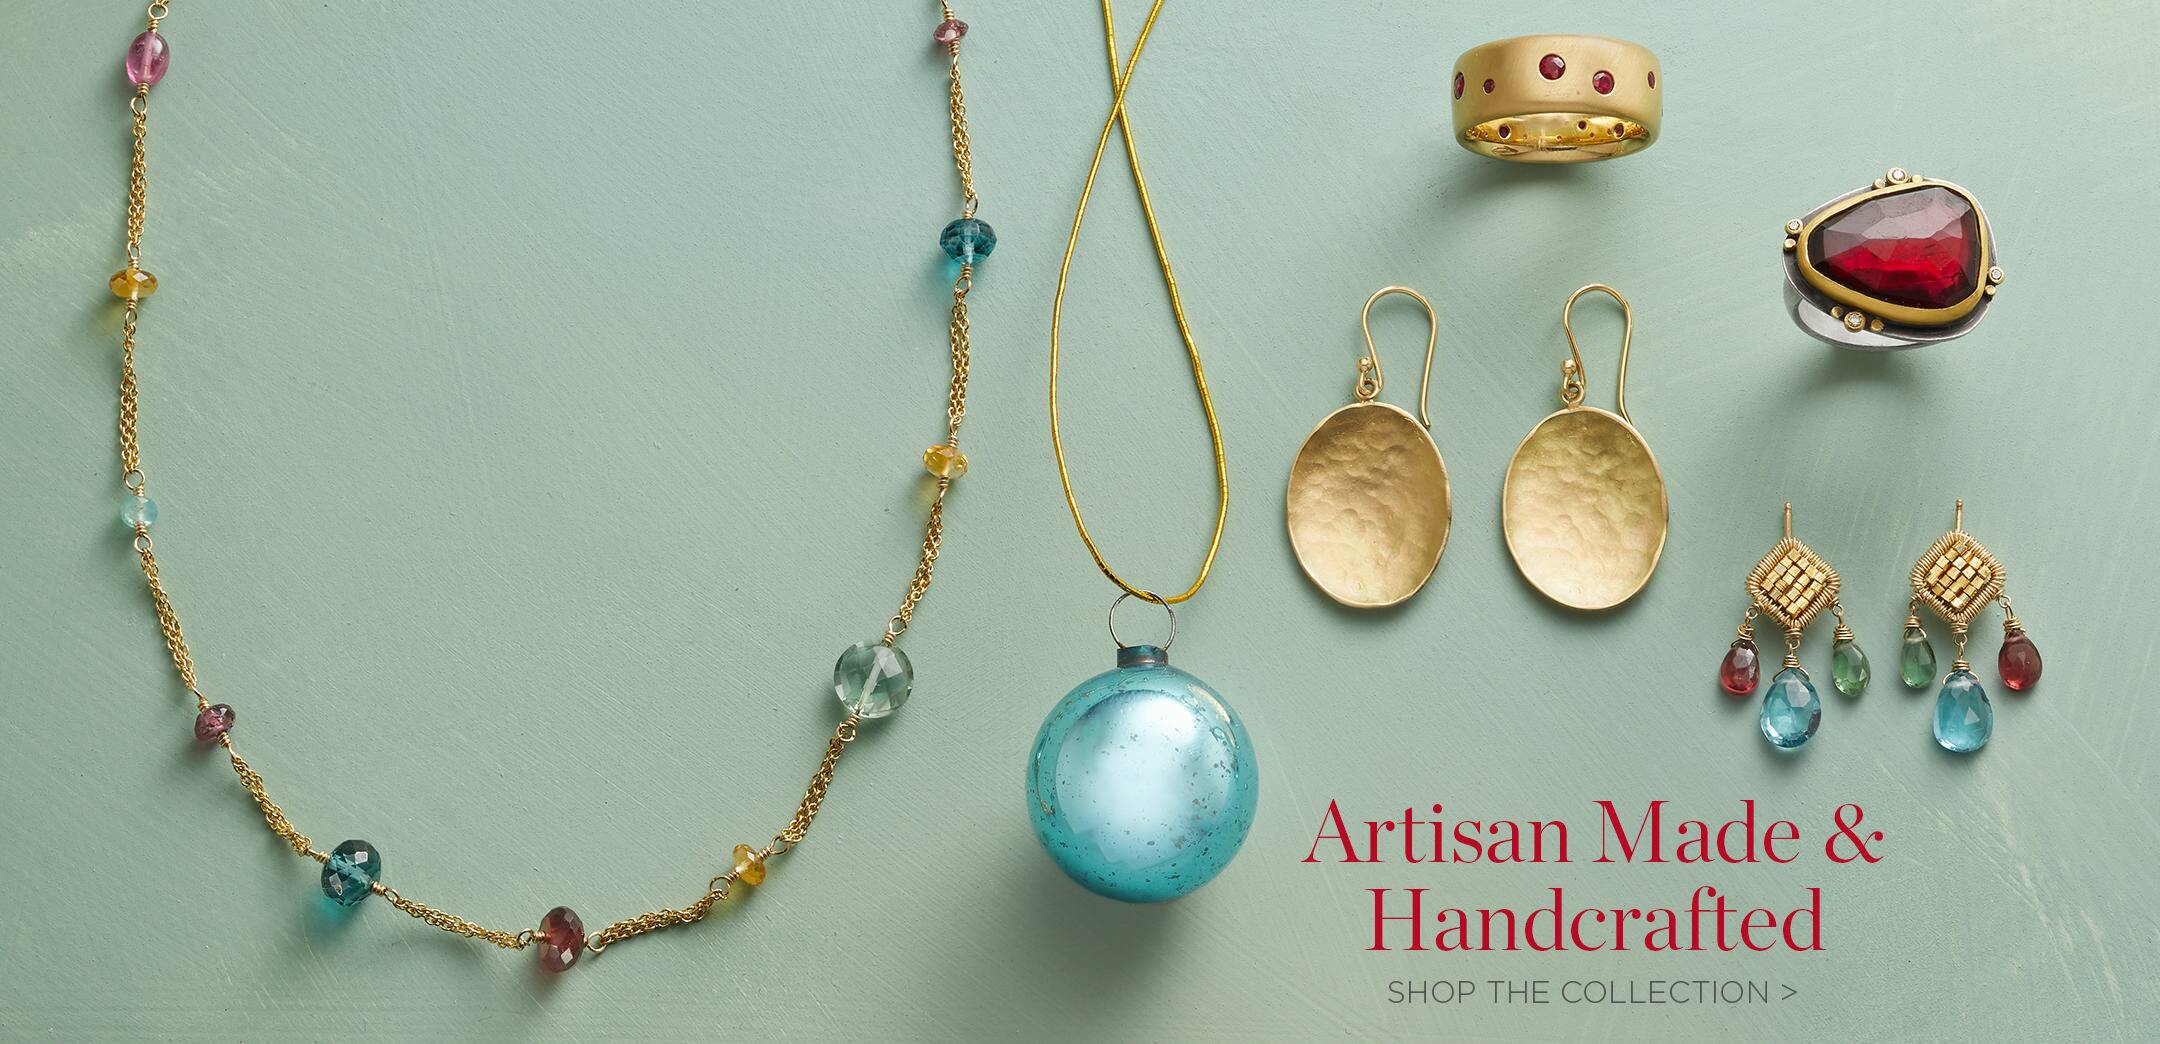 Explore Artisan Jewelry